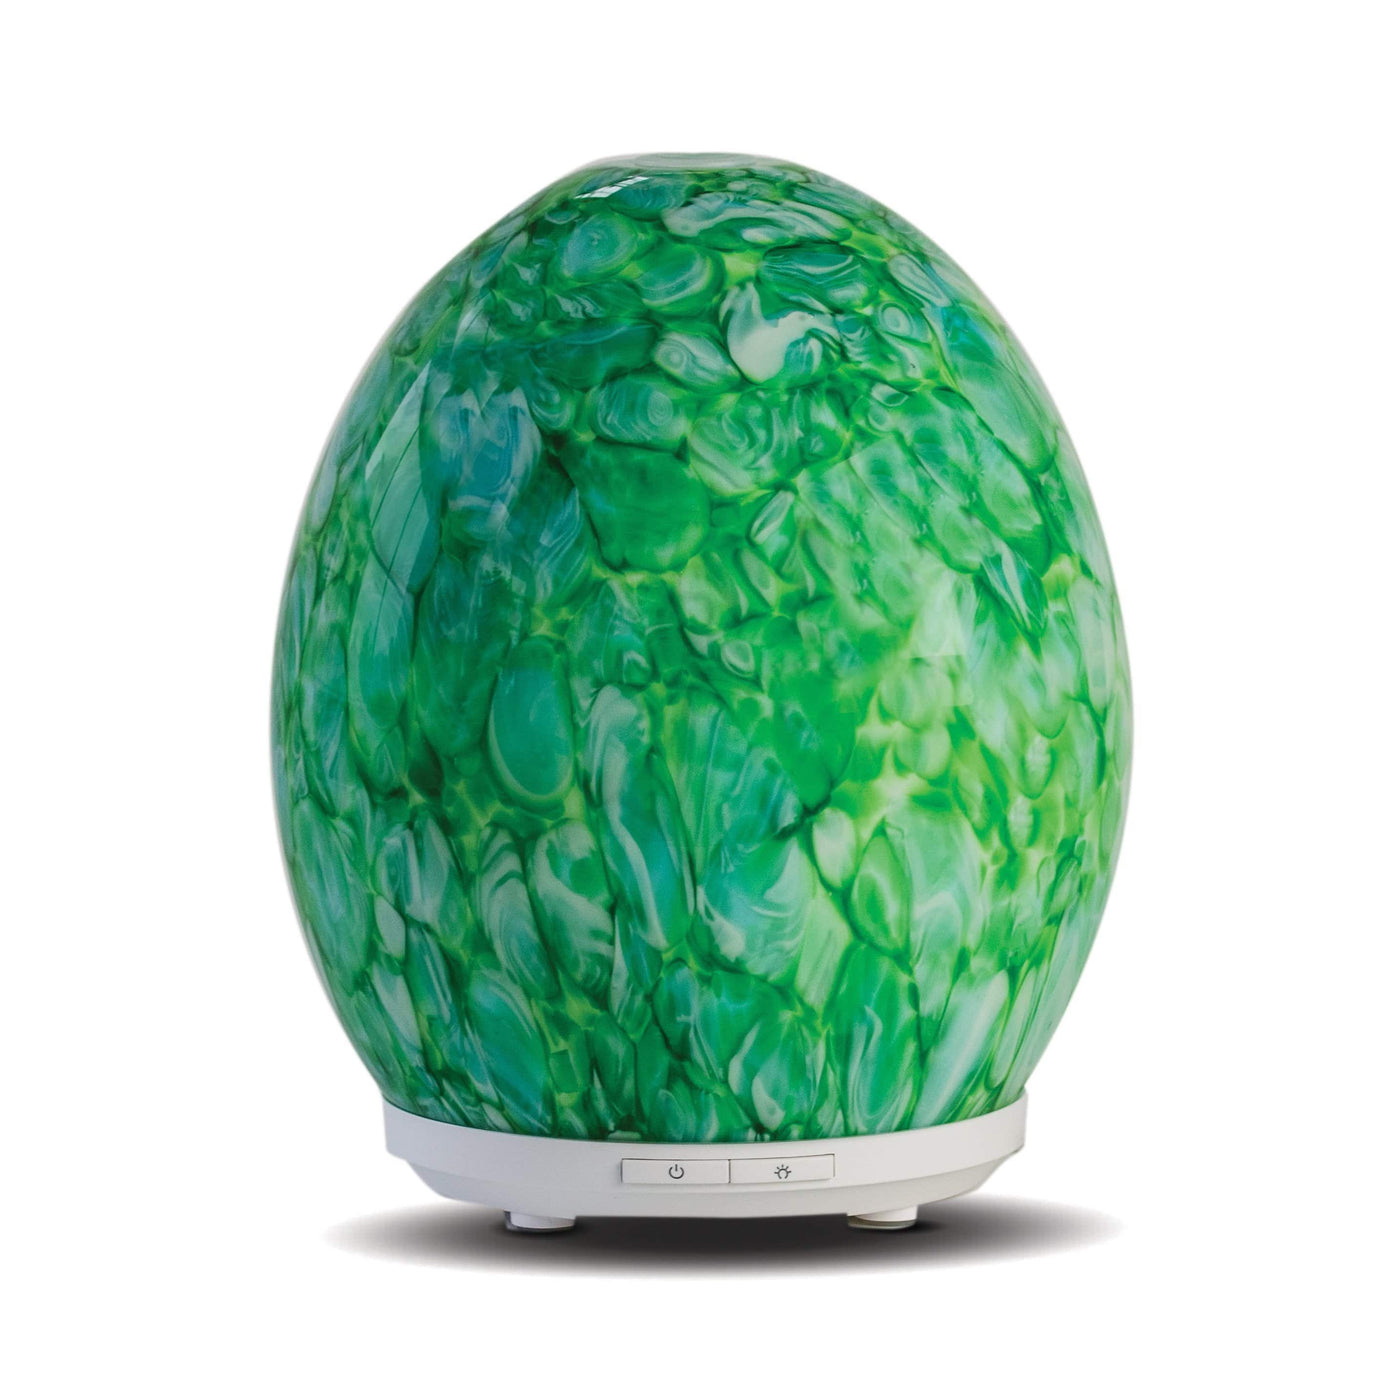 GreenAir Jade Marble Aromatherapy Diffuser-Diffusers-Ice 'N' Fire